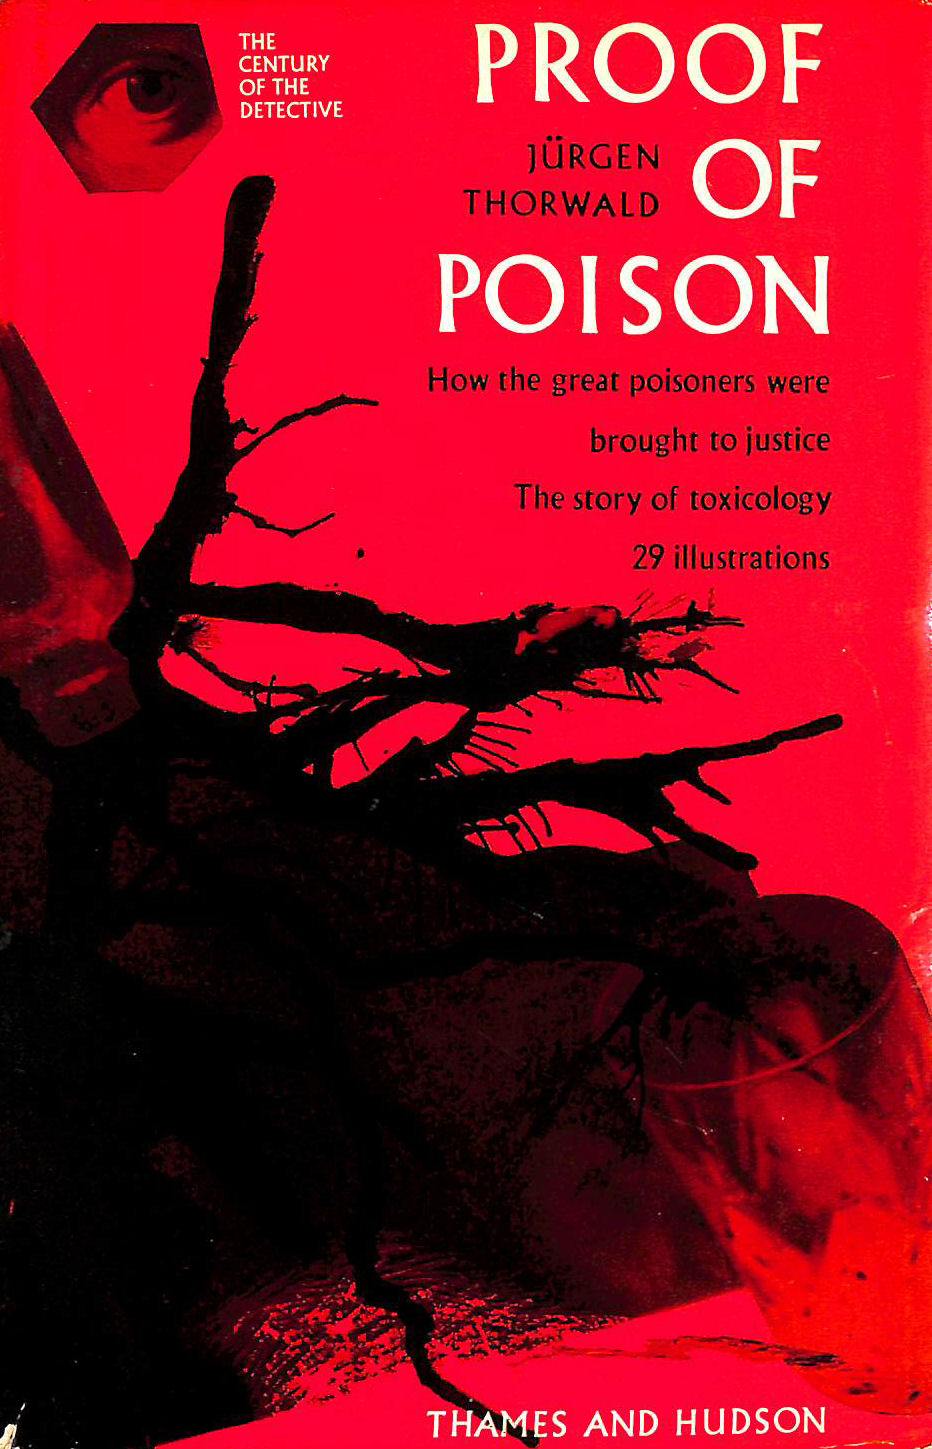 Image for Proof of Poison (Century of the Detective S.)